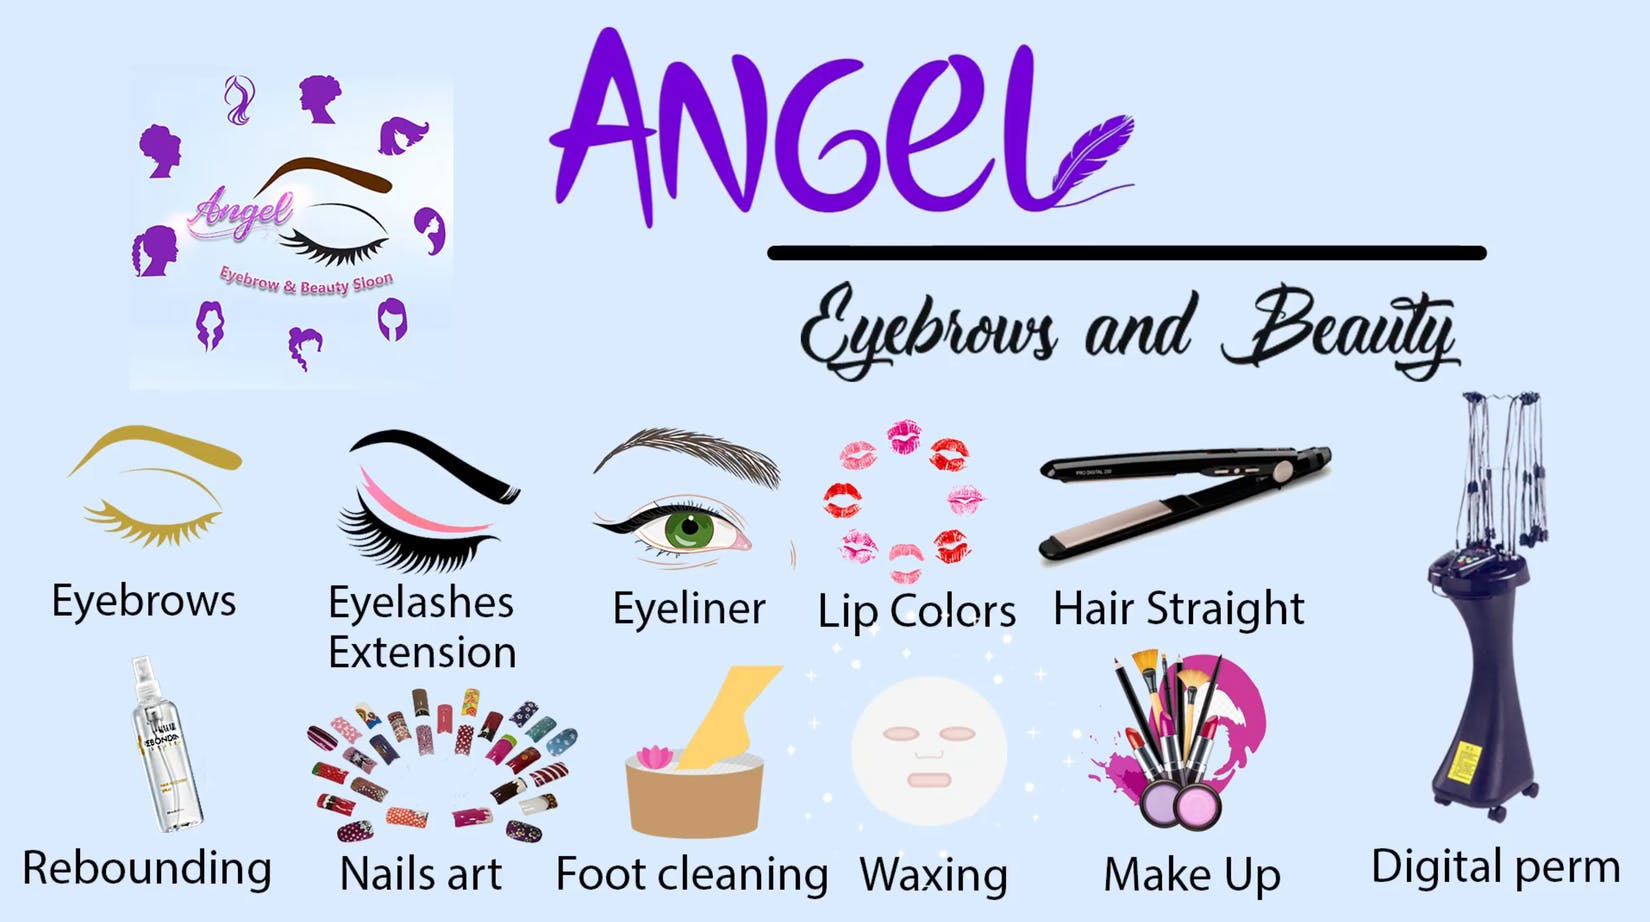 Angel Eyebrows and Salon | Beauty